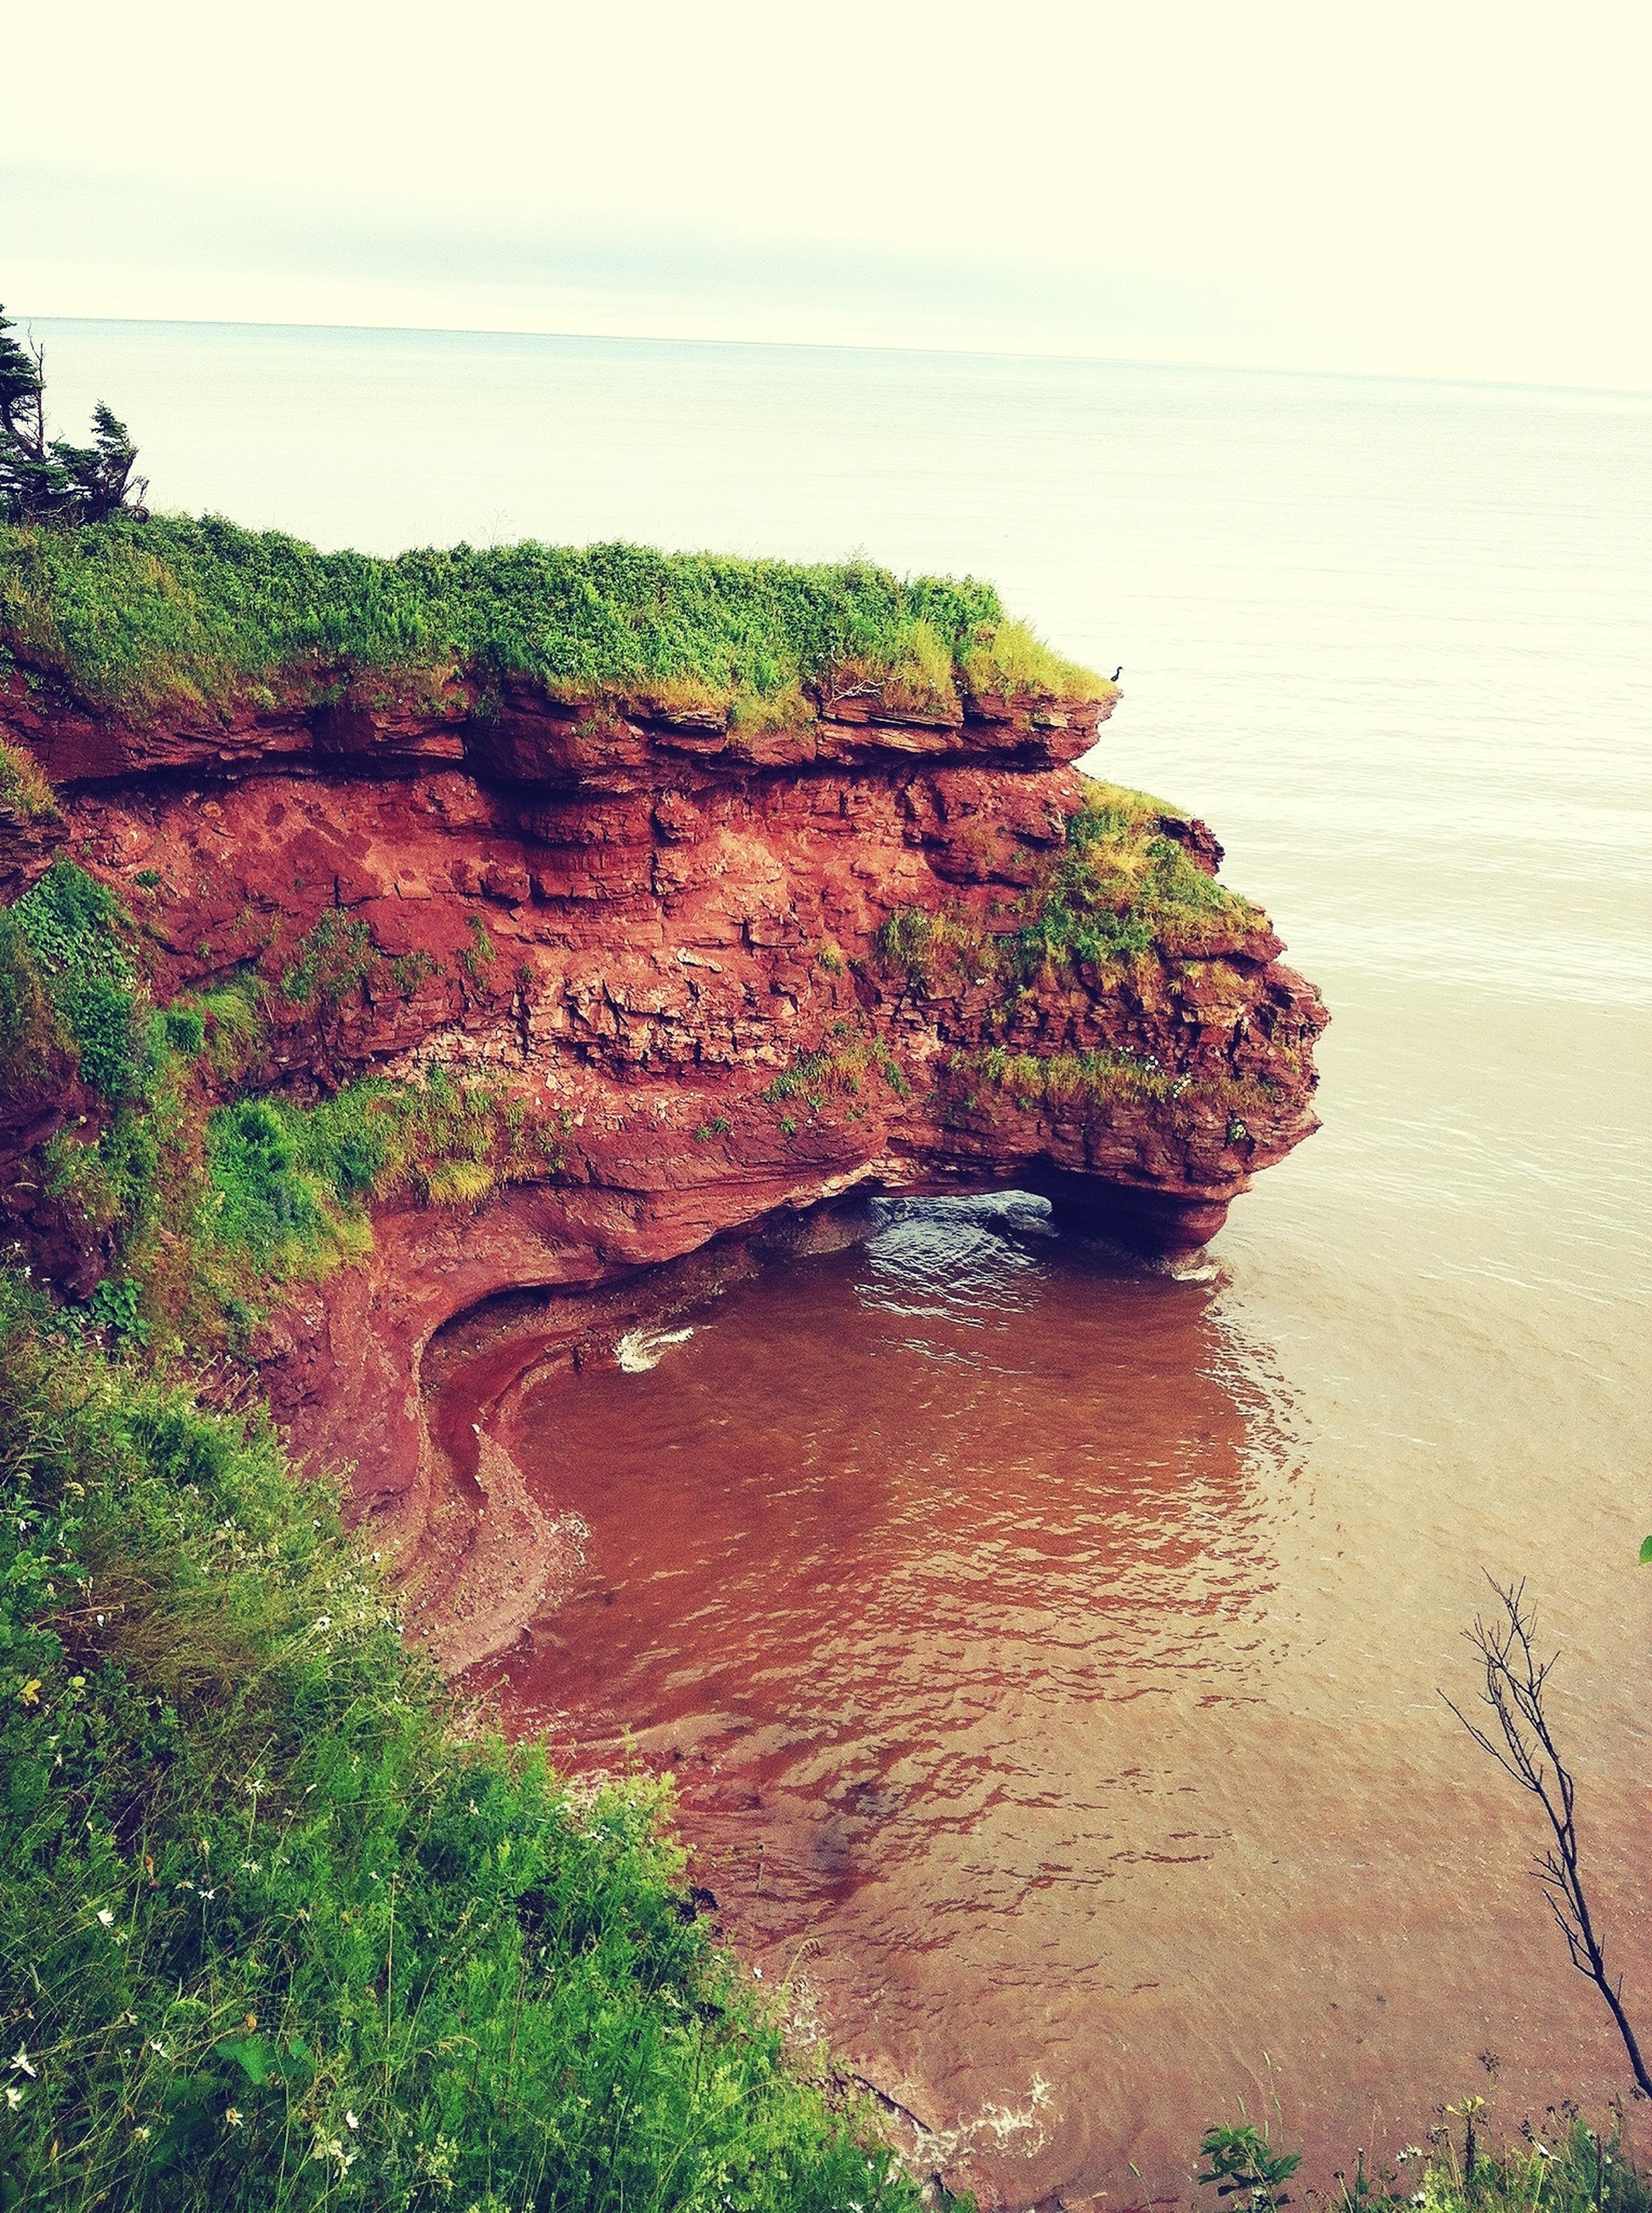 water, sea, beach, horizon over water, tranquility, tranquil scene, scenics, shore, beauty in nature, nature, rock - object, coastline, sky, idyllic, rock formation, rock, sand, grass, plant, cliff